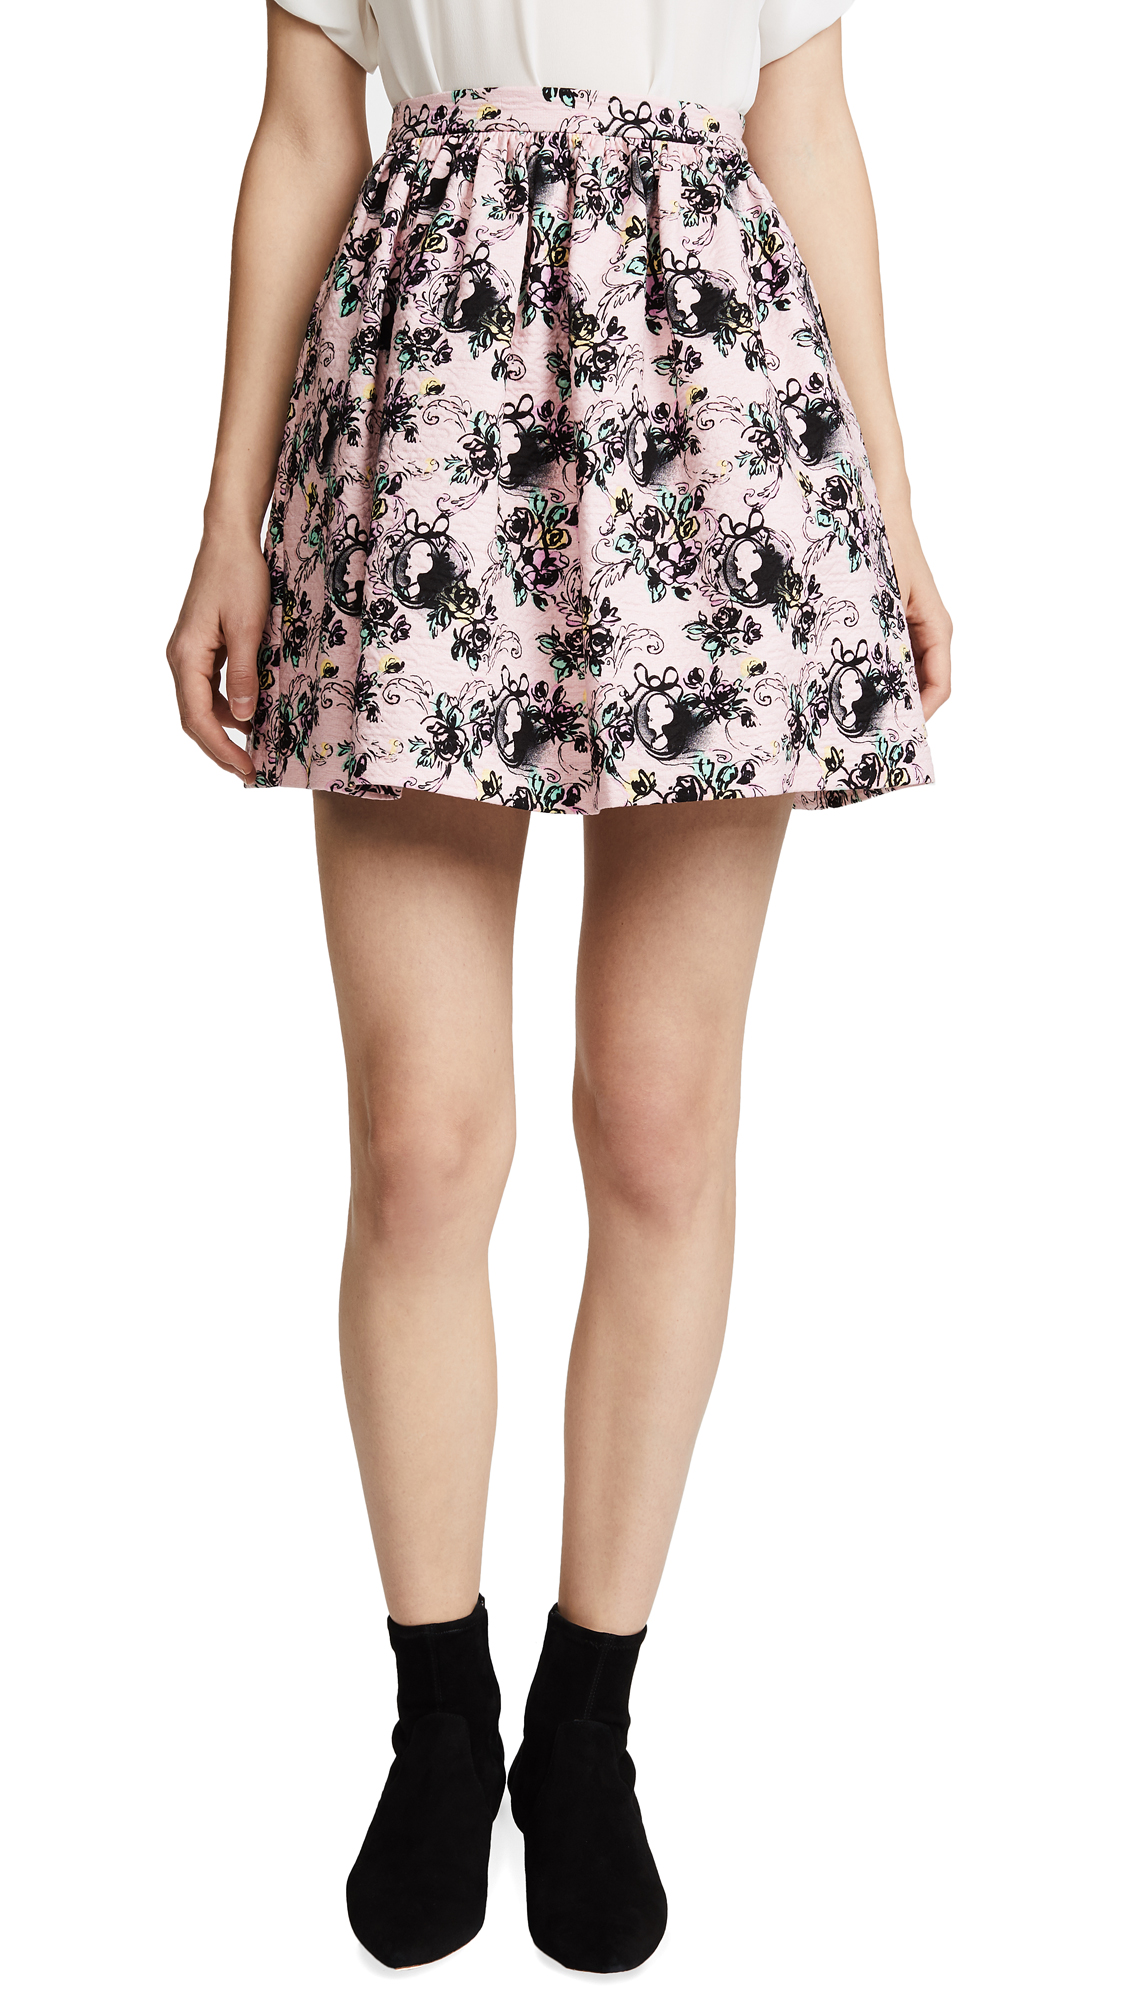 Boutique Moschino Patterned Skirt - Pink Multi